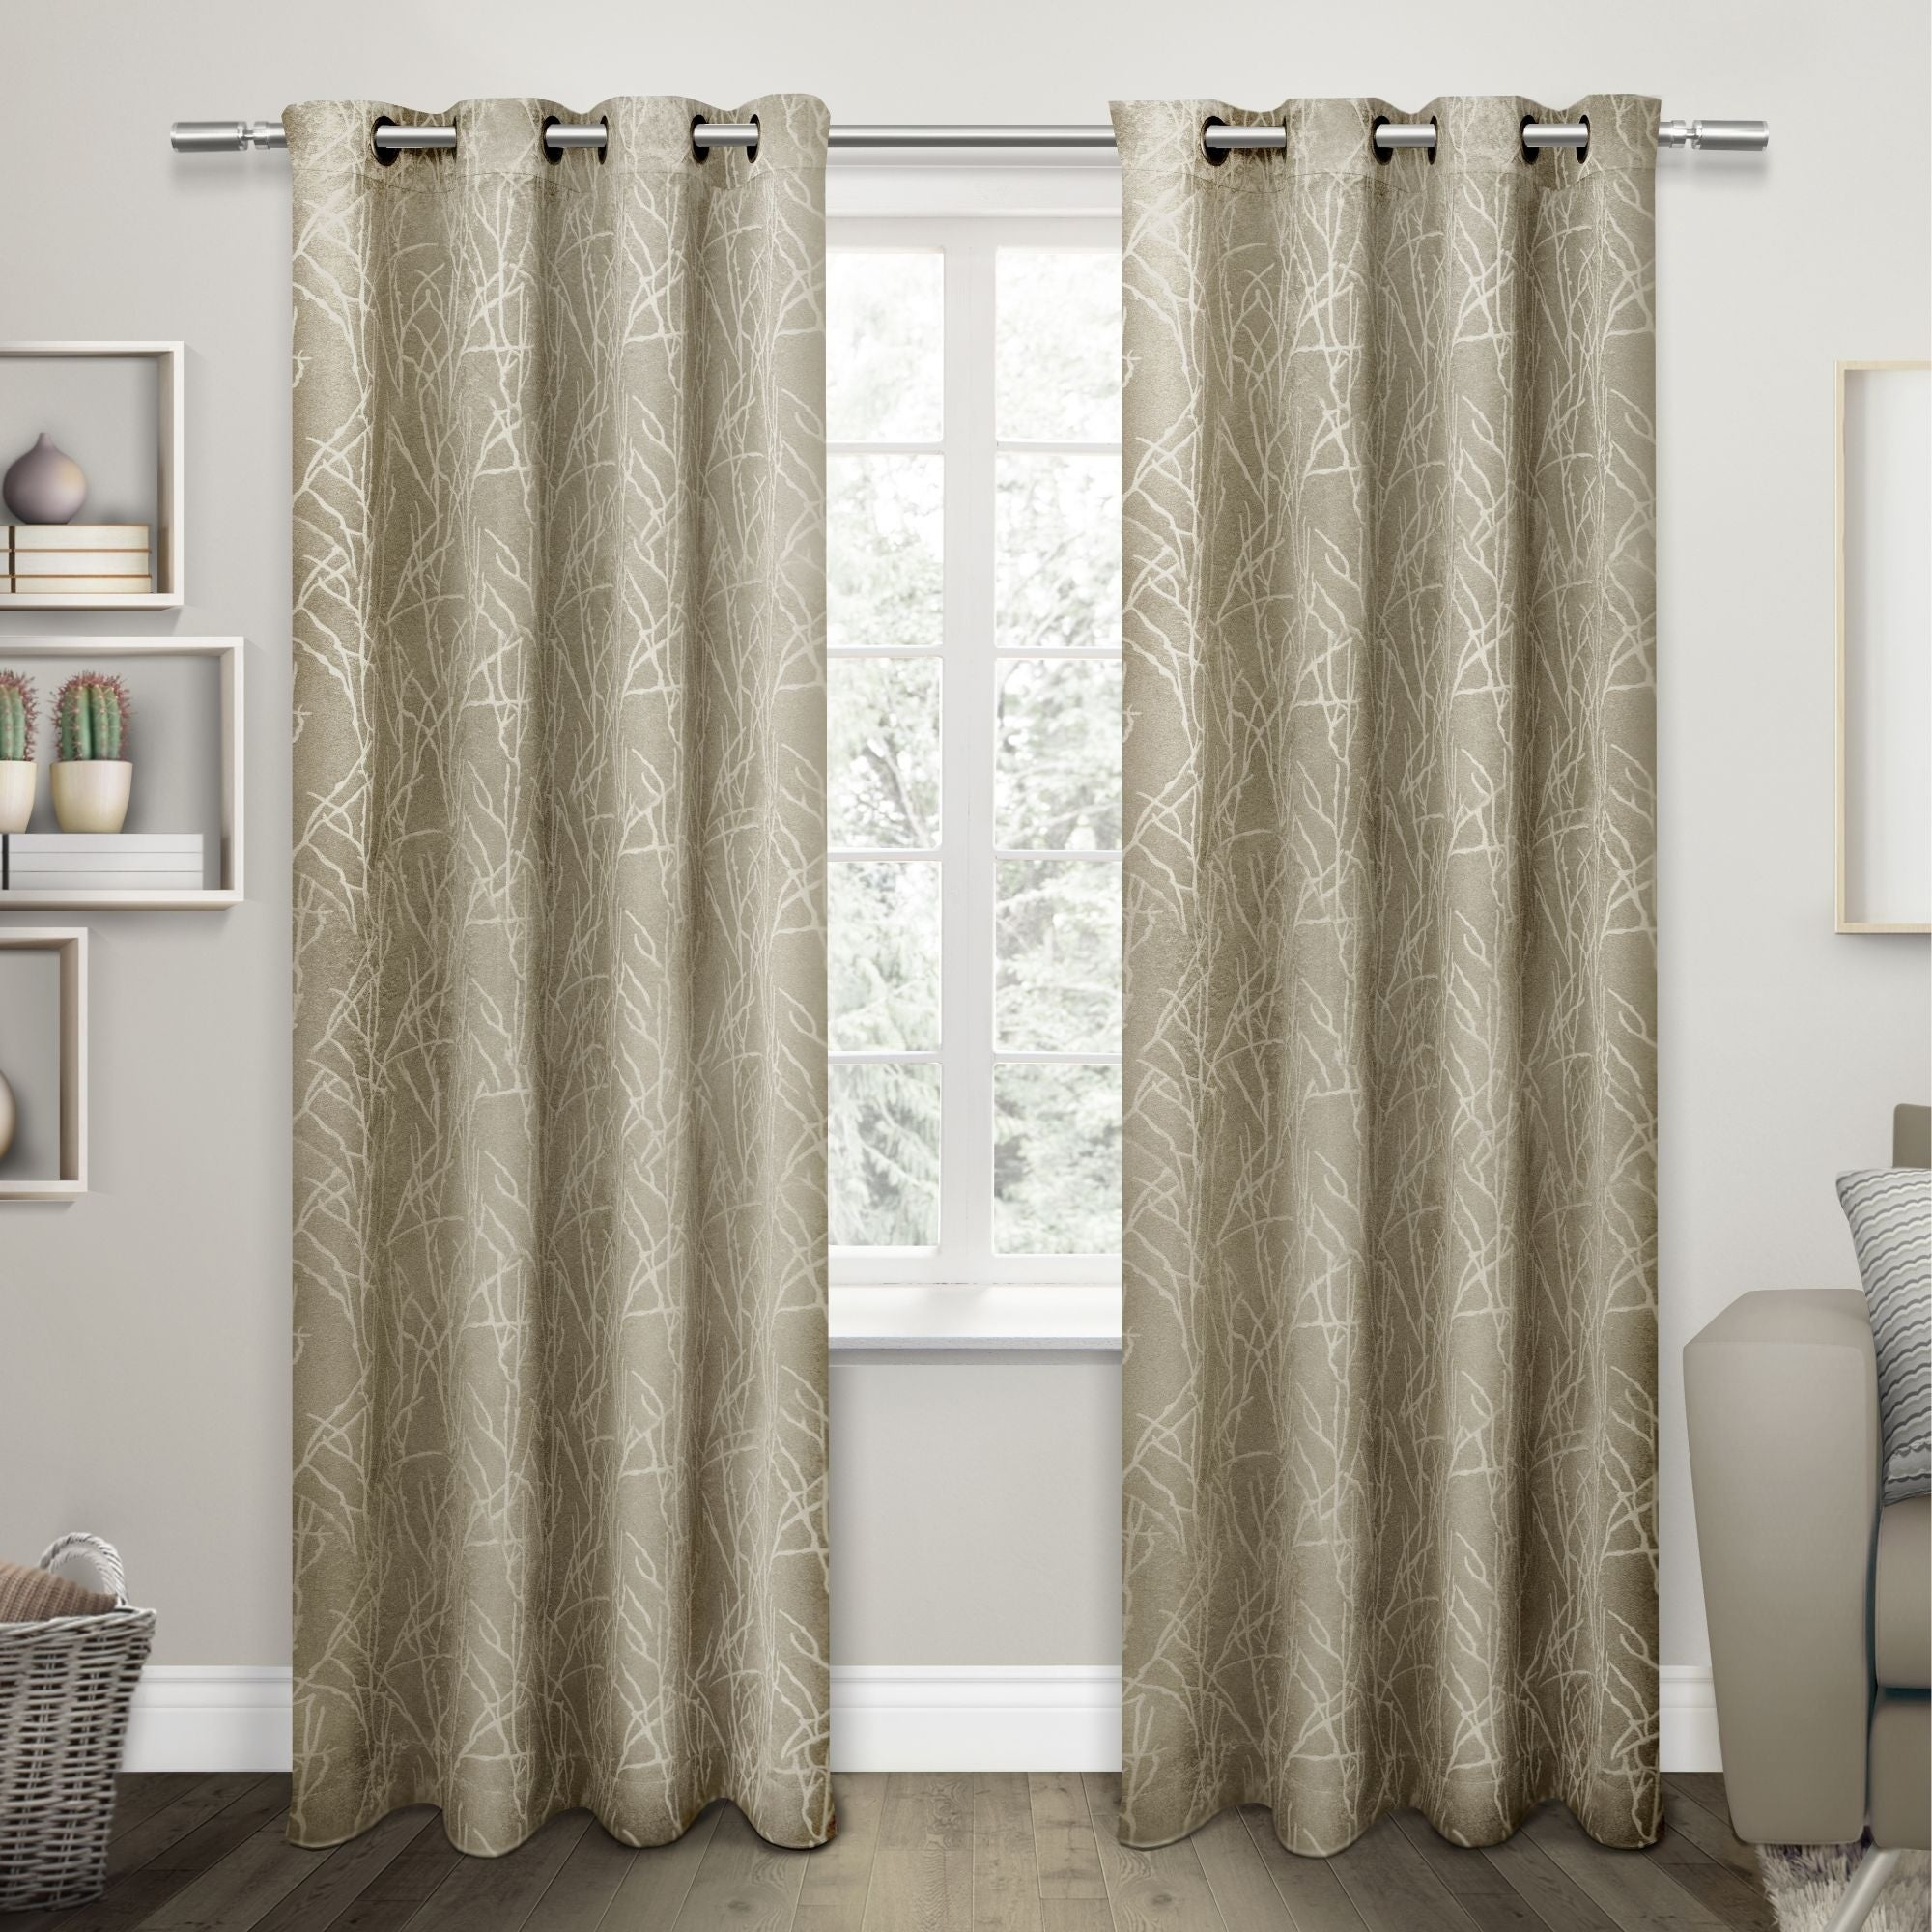 Featured Photo of Twig Insulated Blackout Curtain Panel Pairs With Grommet Top